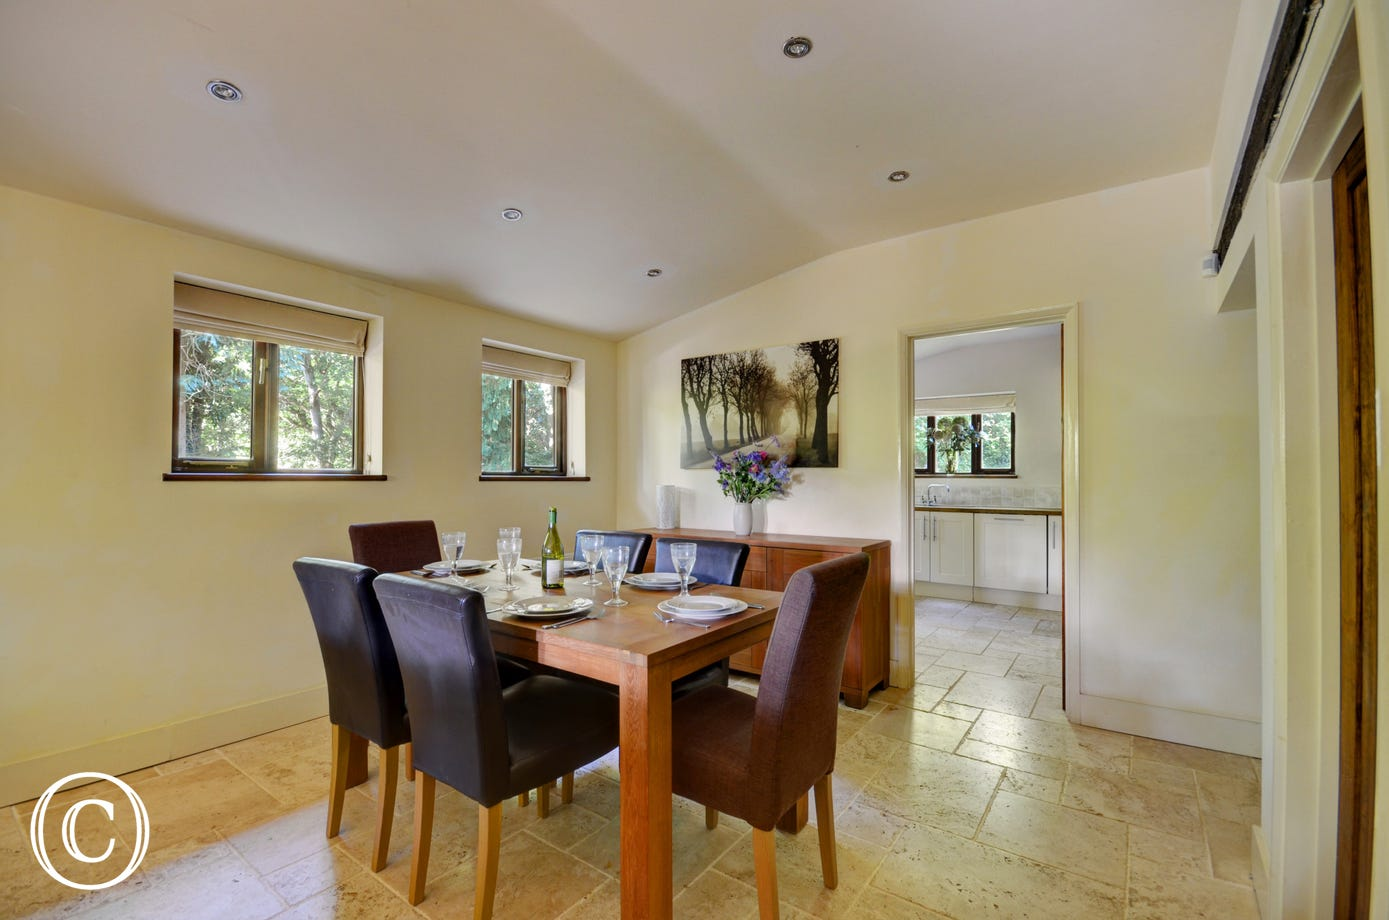 The dining room has an attractive dining table with six chairs and leads through to the kitchen